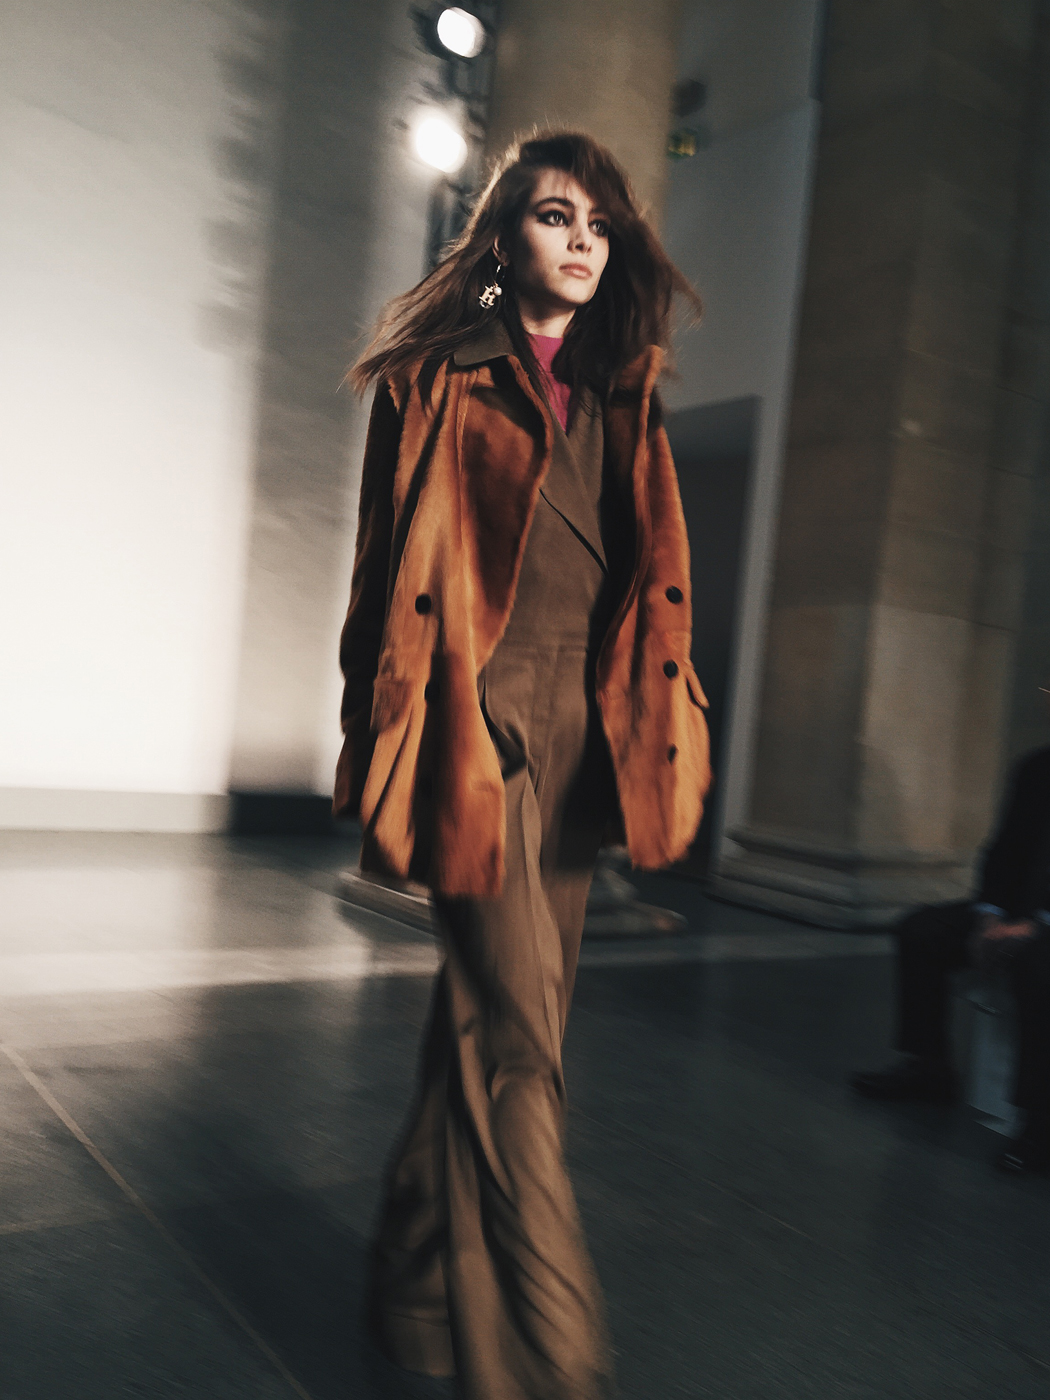 Topshop_Unique-Khaki_Trousers-VNeck_Sweater-Suede_Jacket-Bow_Shoes-Outfit-LFW-London_Fashion_Week_Fall_2016-Street_Style-69